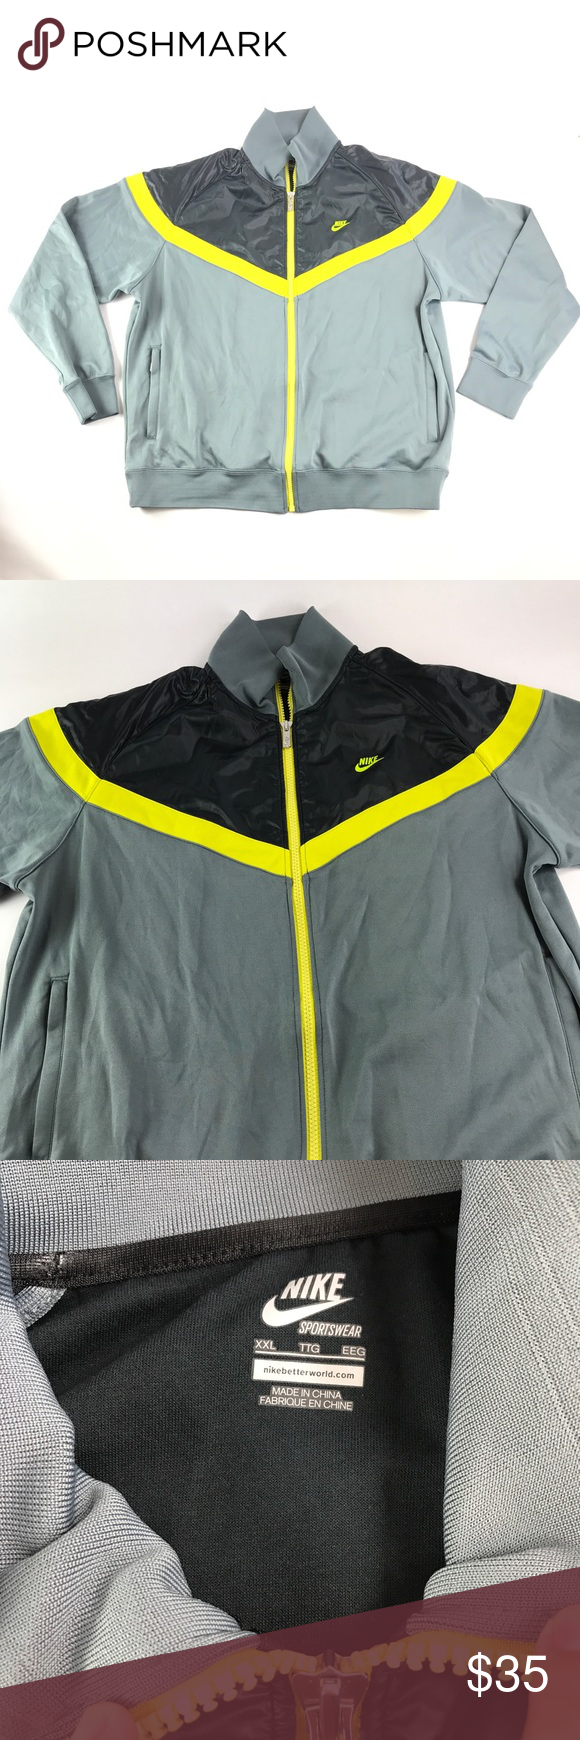 00538d0248f0 Nike Air Sportswear Full Zip Long Sleeve Jacket